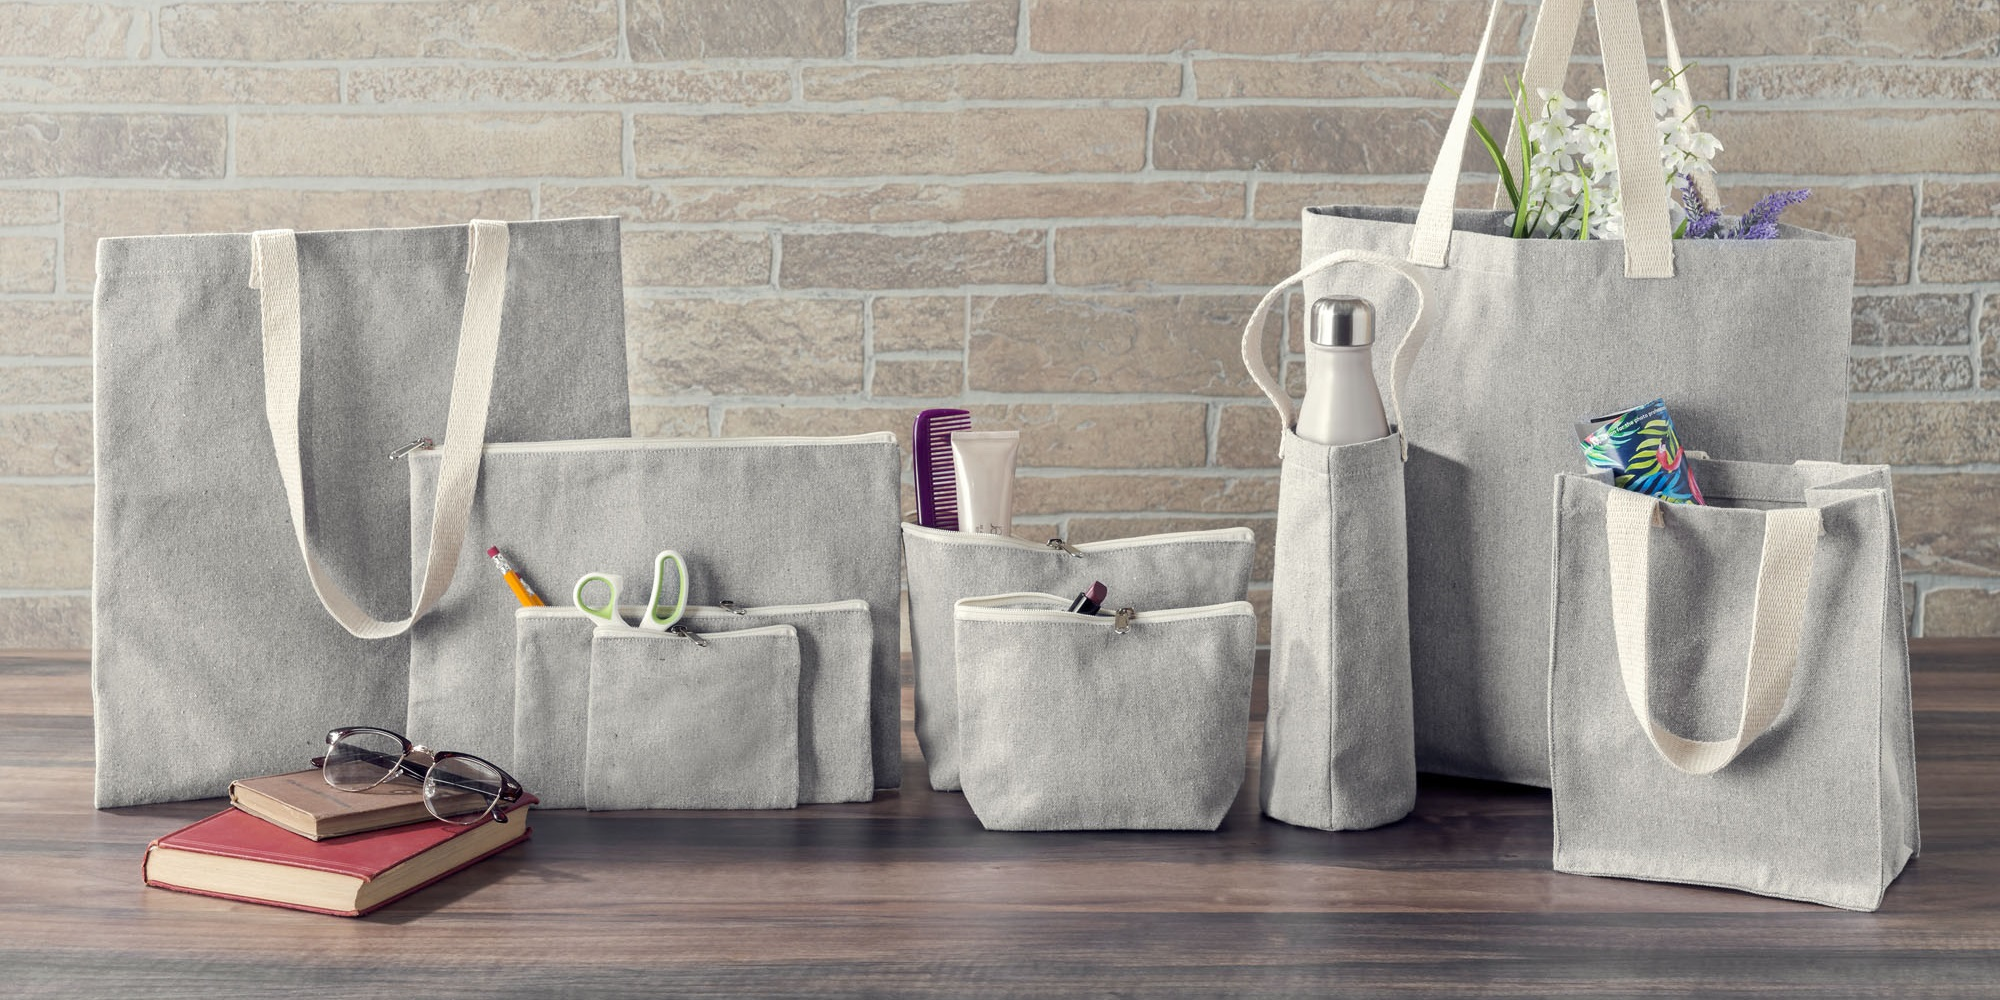 Recycled Canvas, Wholesale Tote Bags | Packaging Decor